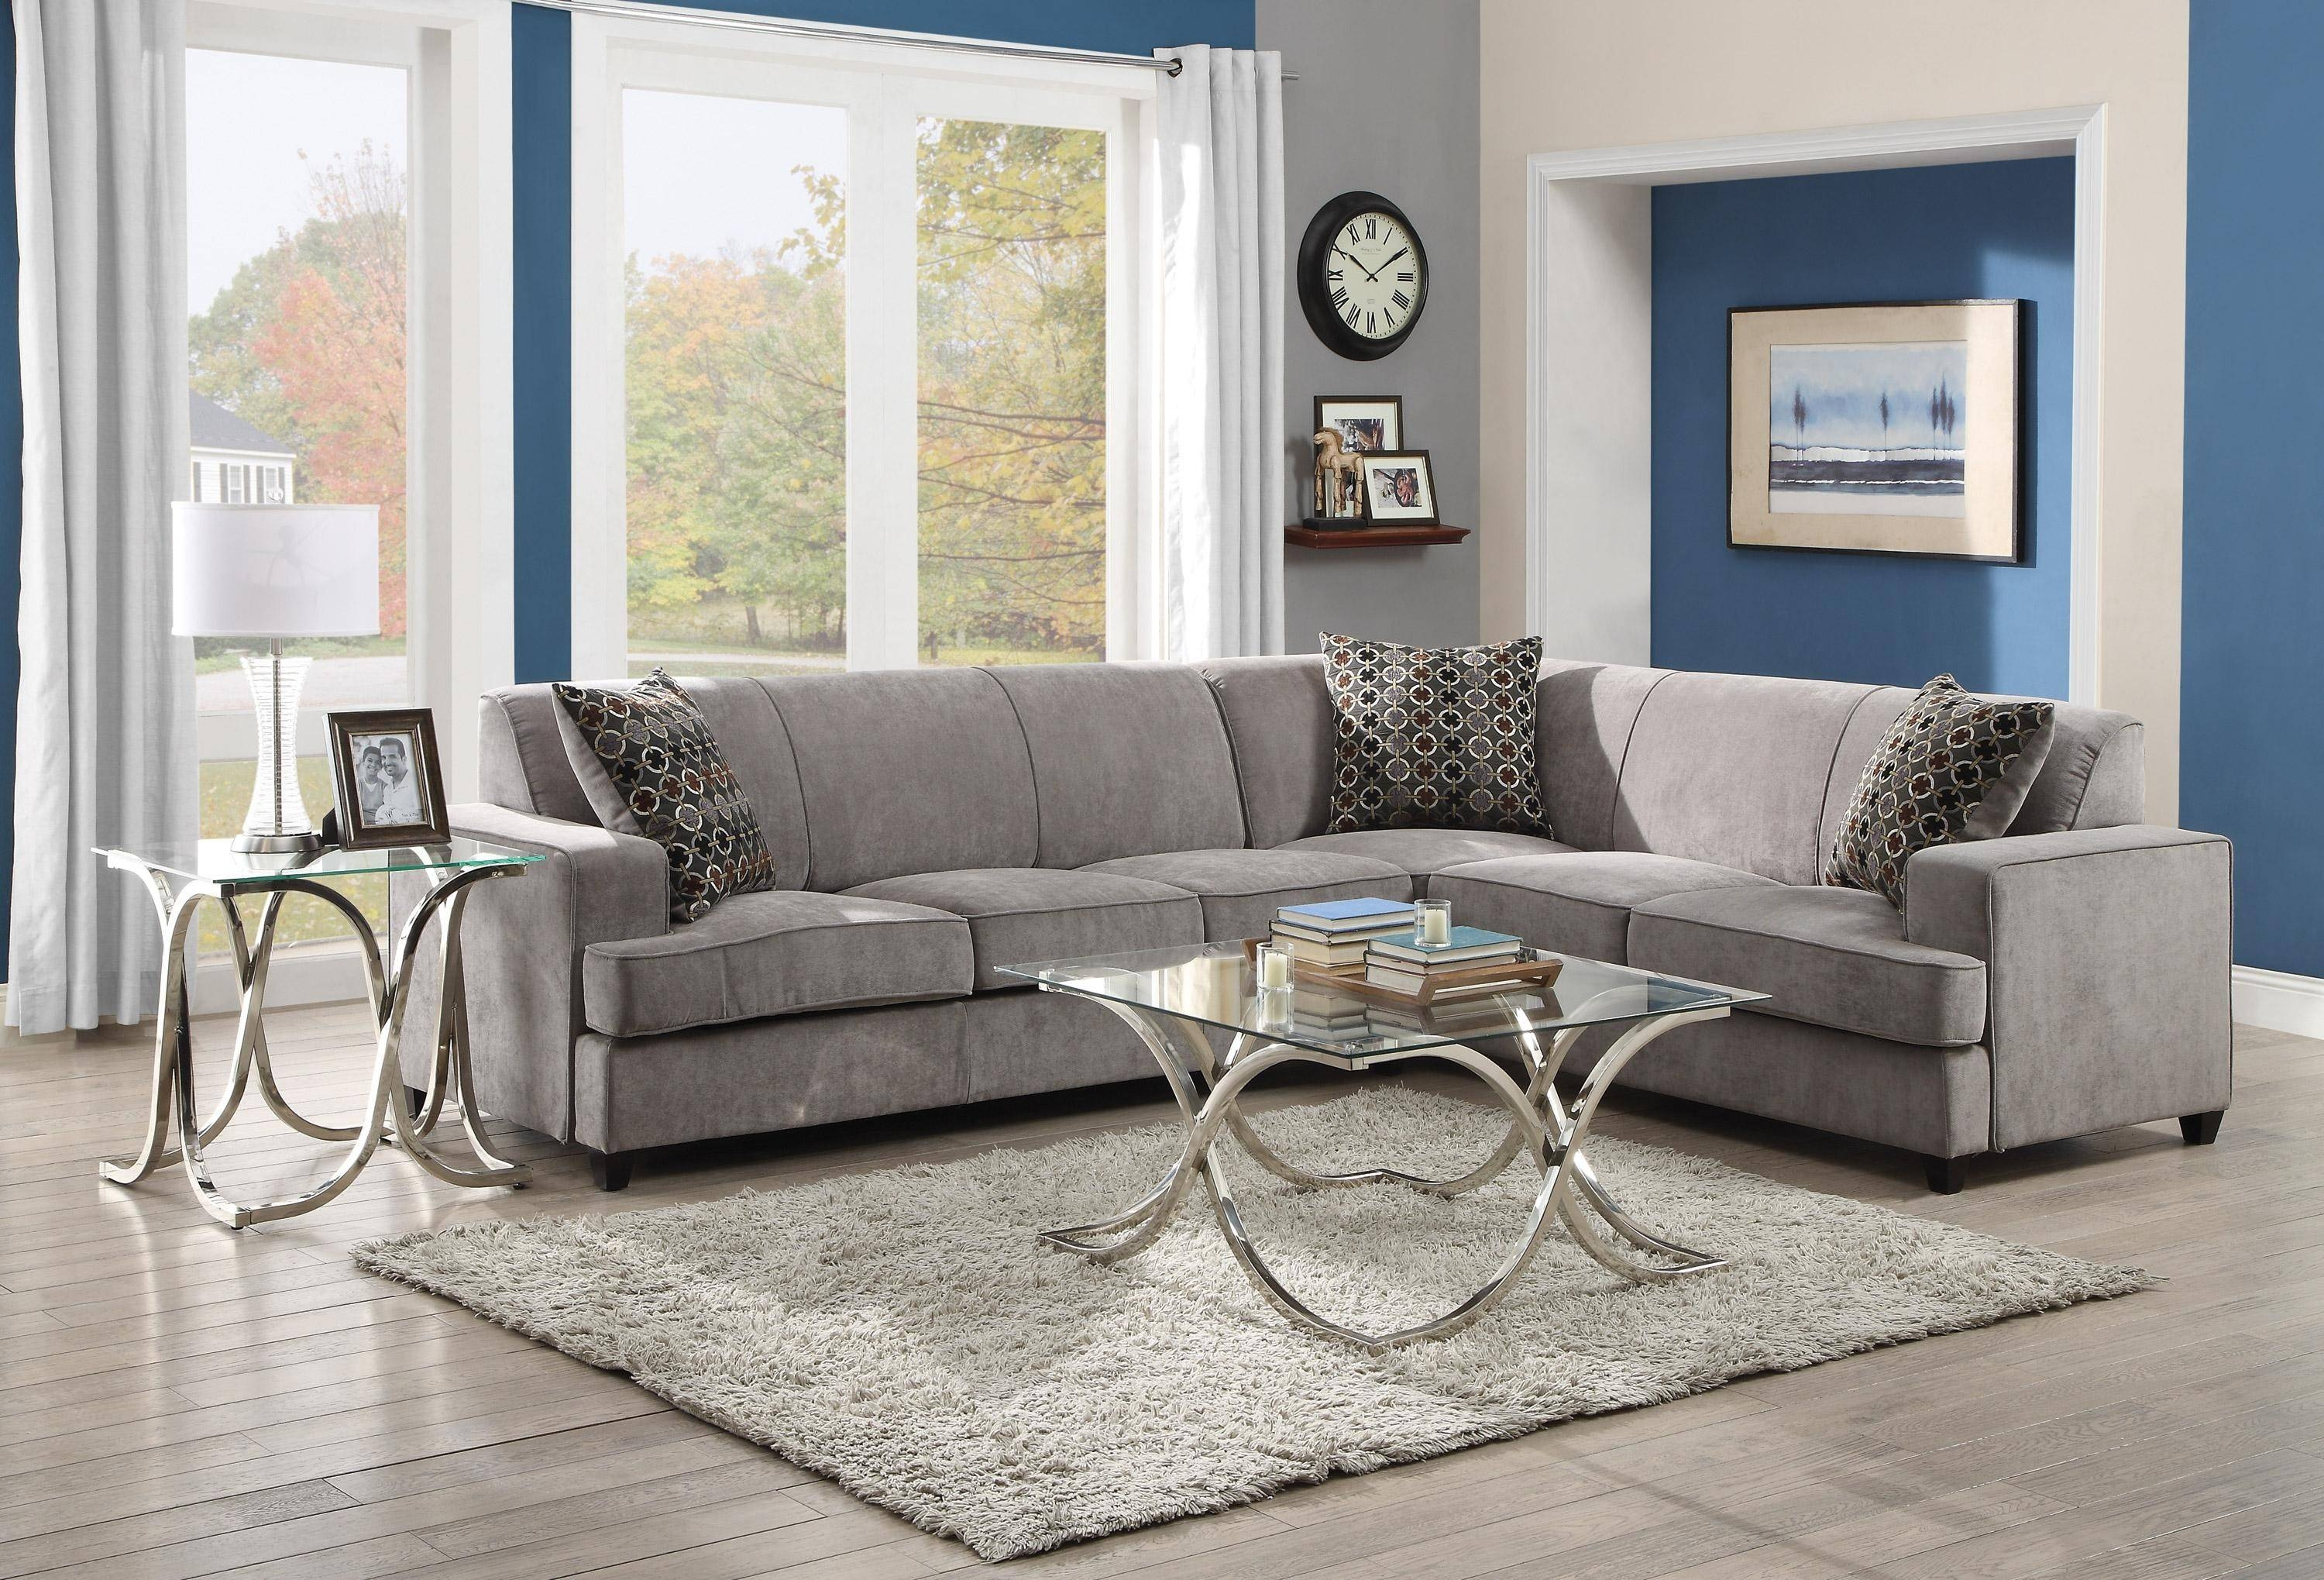 Coffee Tables For Sectionals inside Coffee Table For Sectional Sofa (Image 11 of 30)